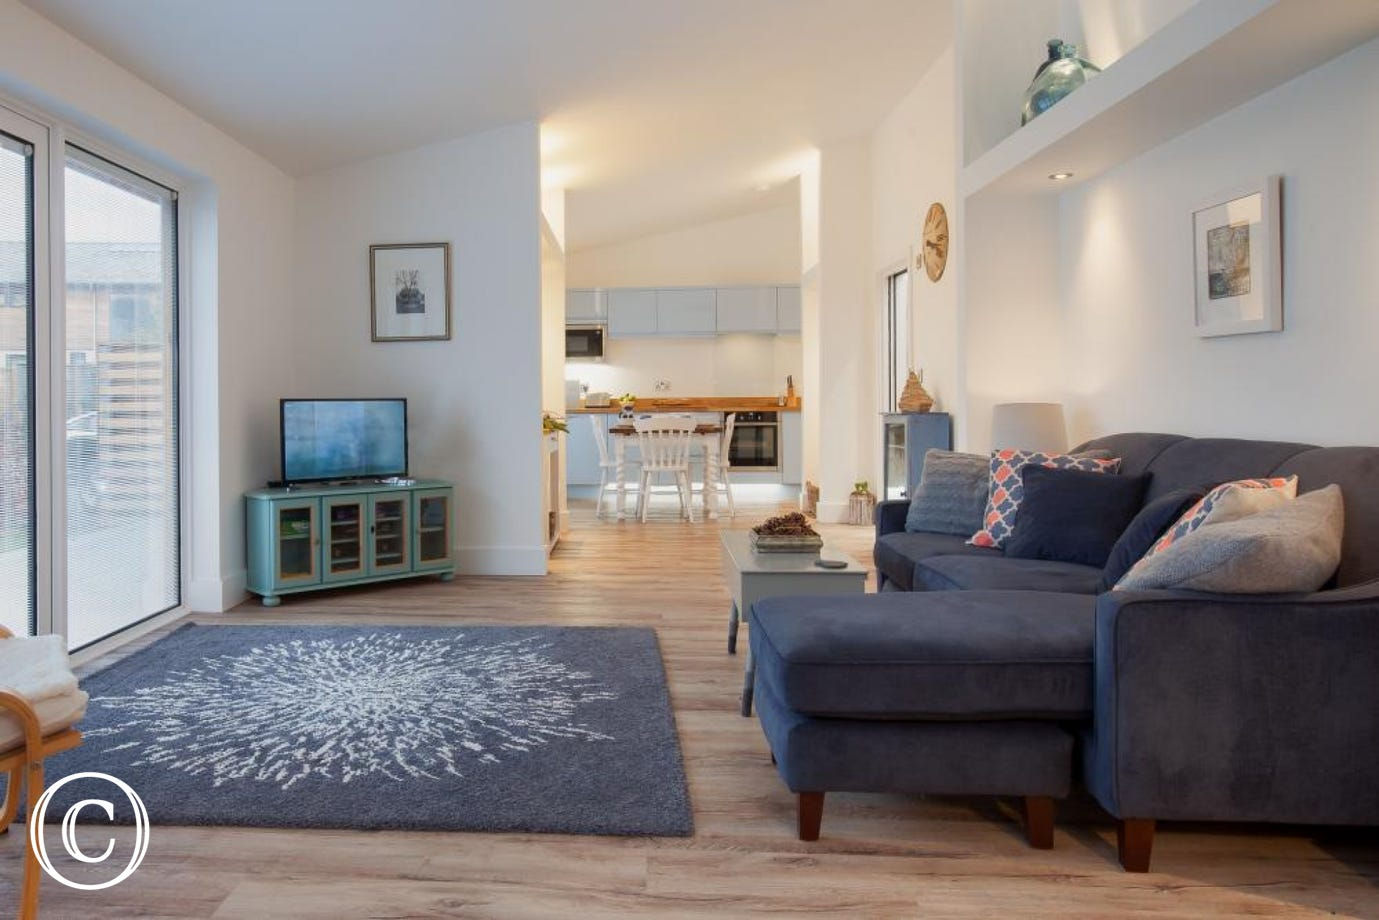 Hygge House, Shaldon - Living area with sofa and television